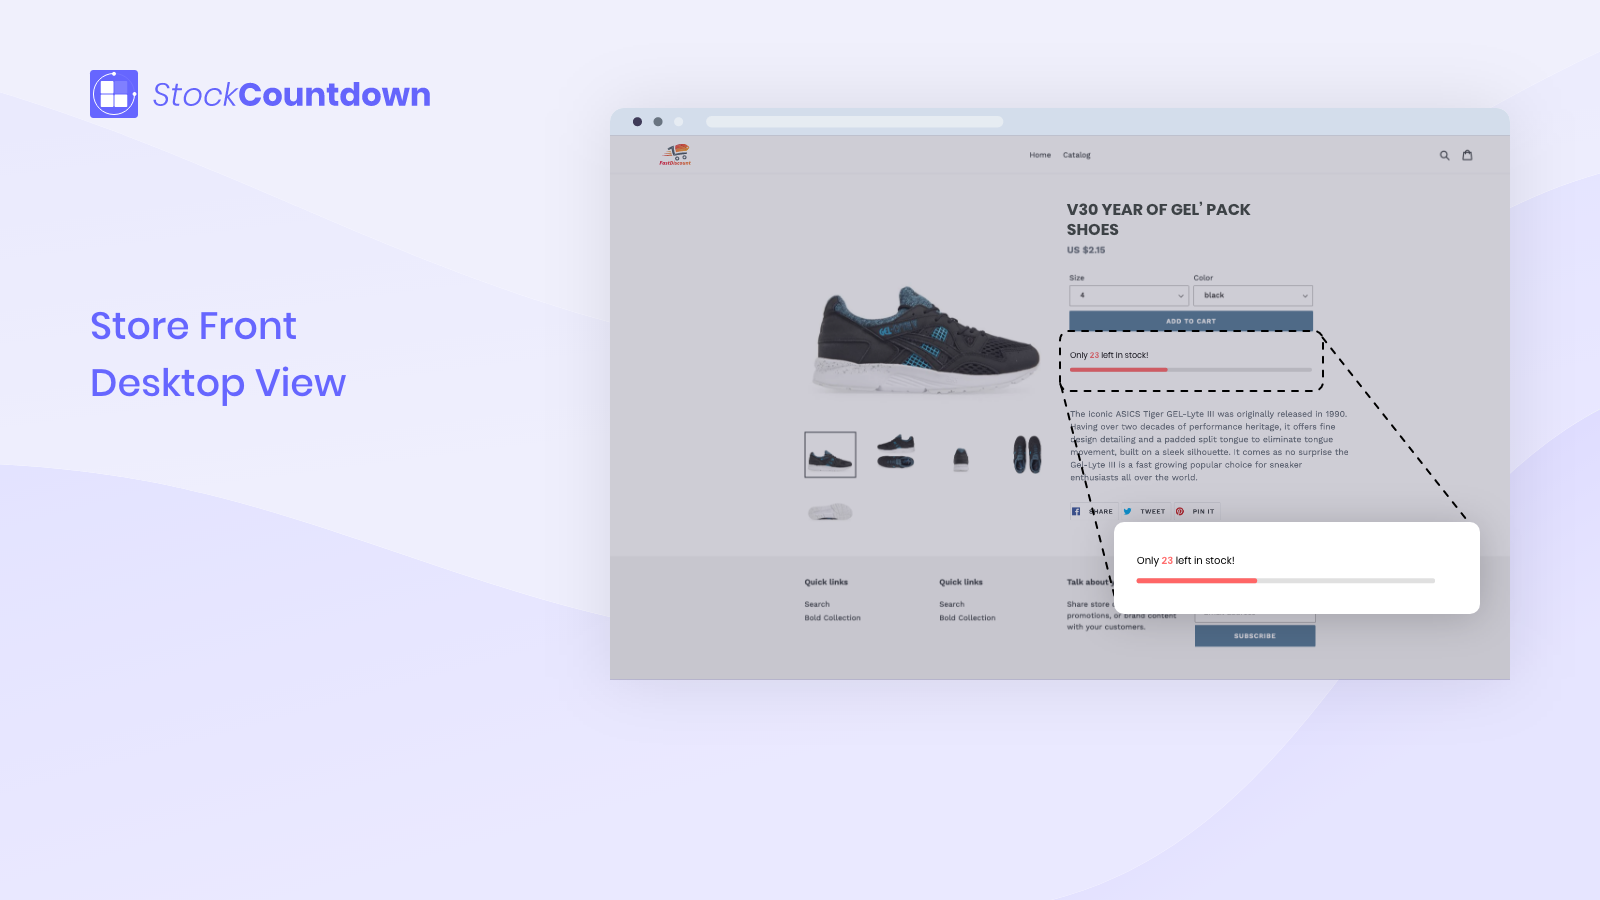 Show stock countdown on store front